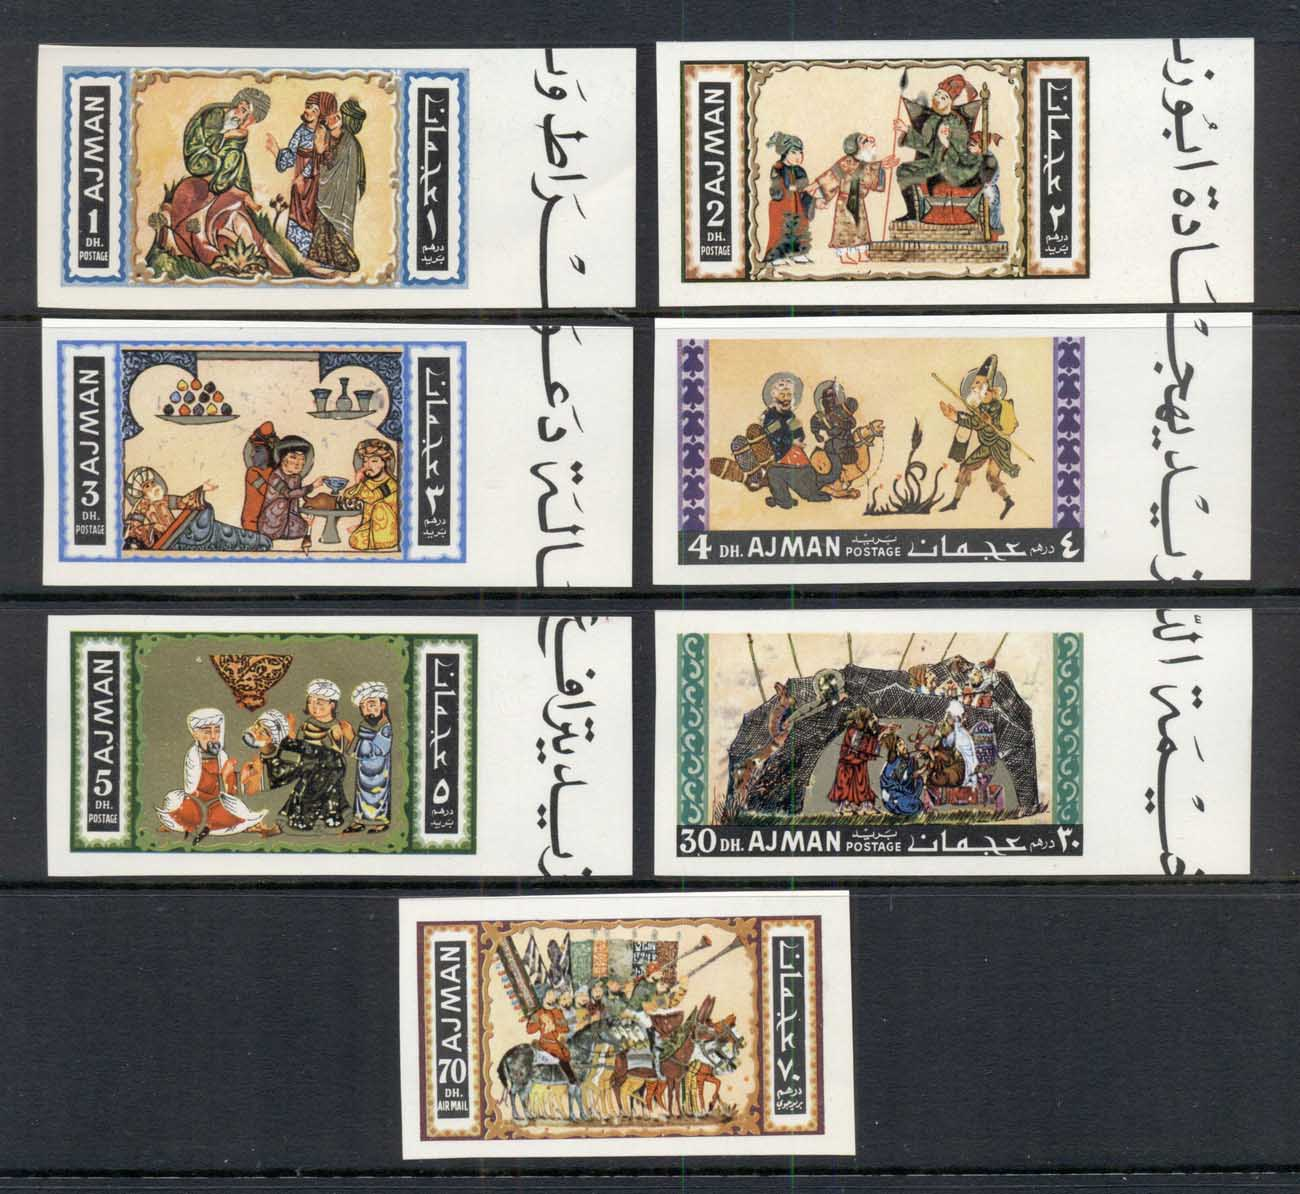 Ajman 1967 Mi#158-164B Paintings by Arab Masters of the 13th Century IMPERF MUH